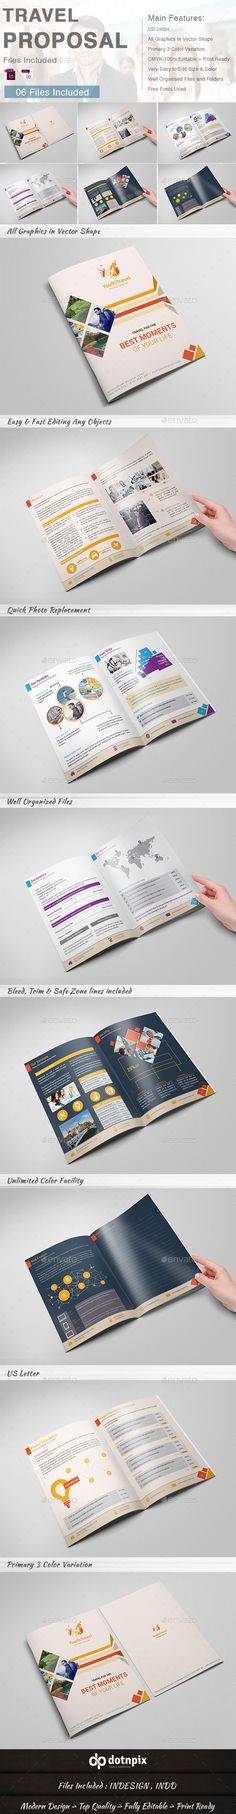 Business Accounting Proposal Proposals, Business and Proposal - travel proposal template